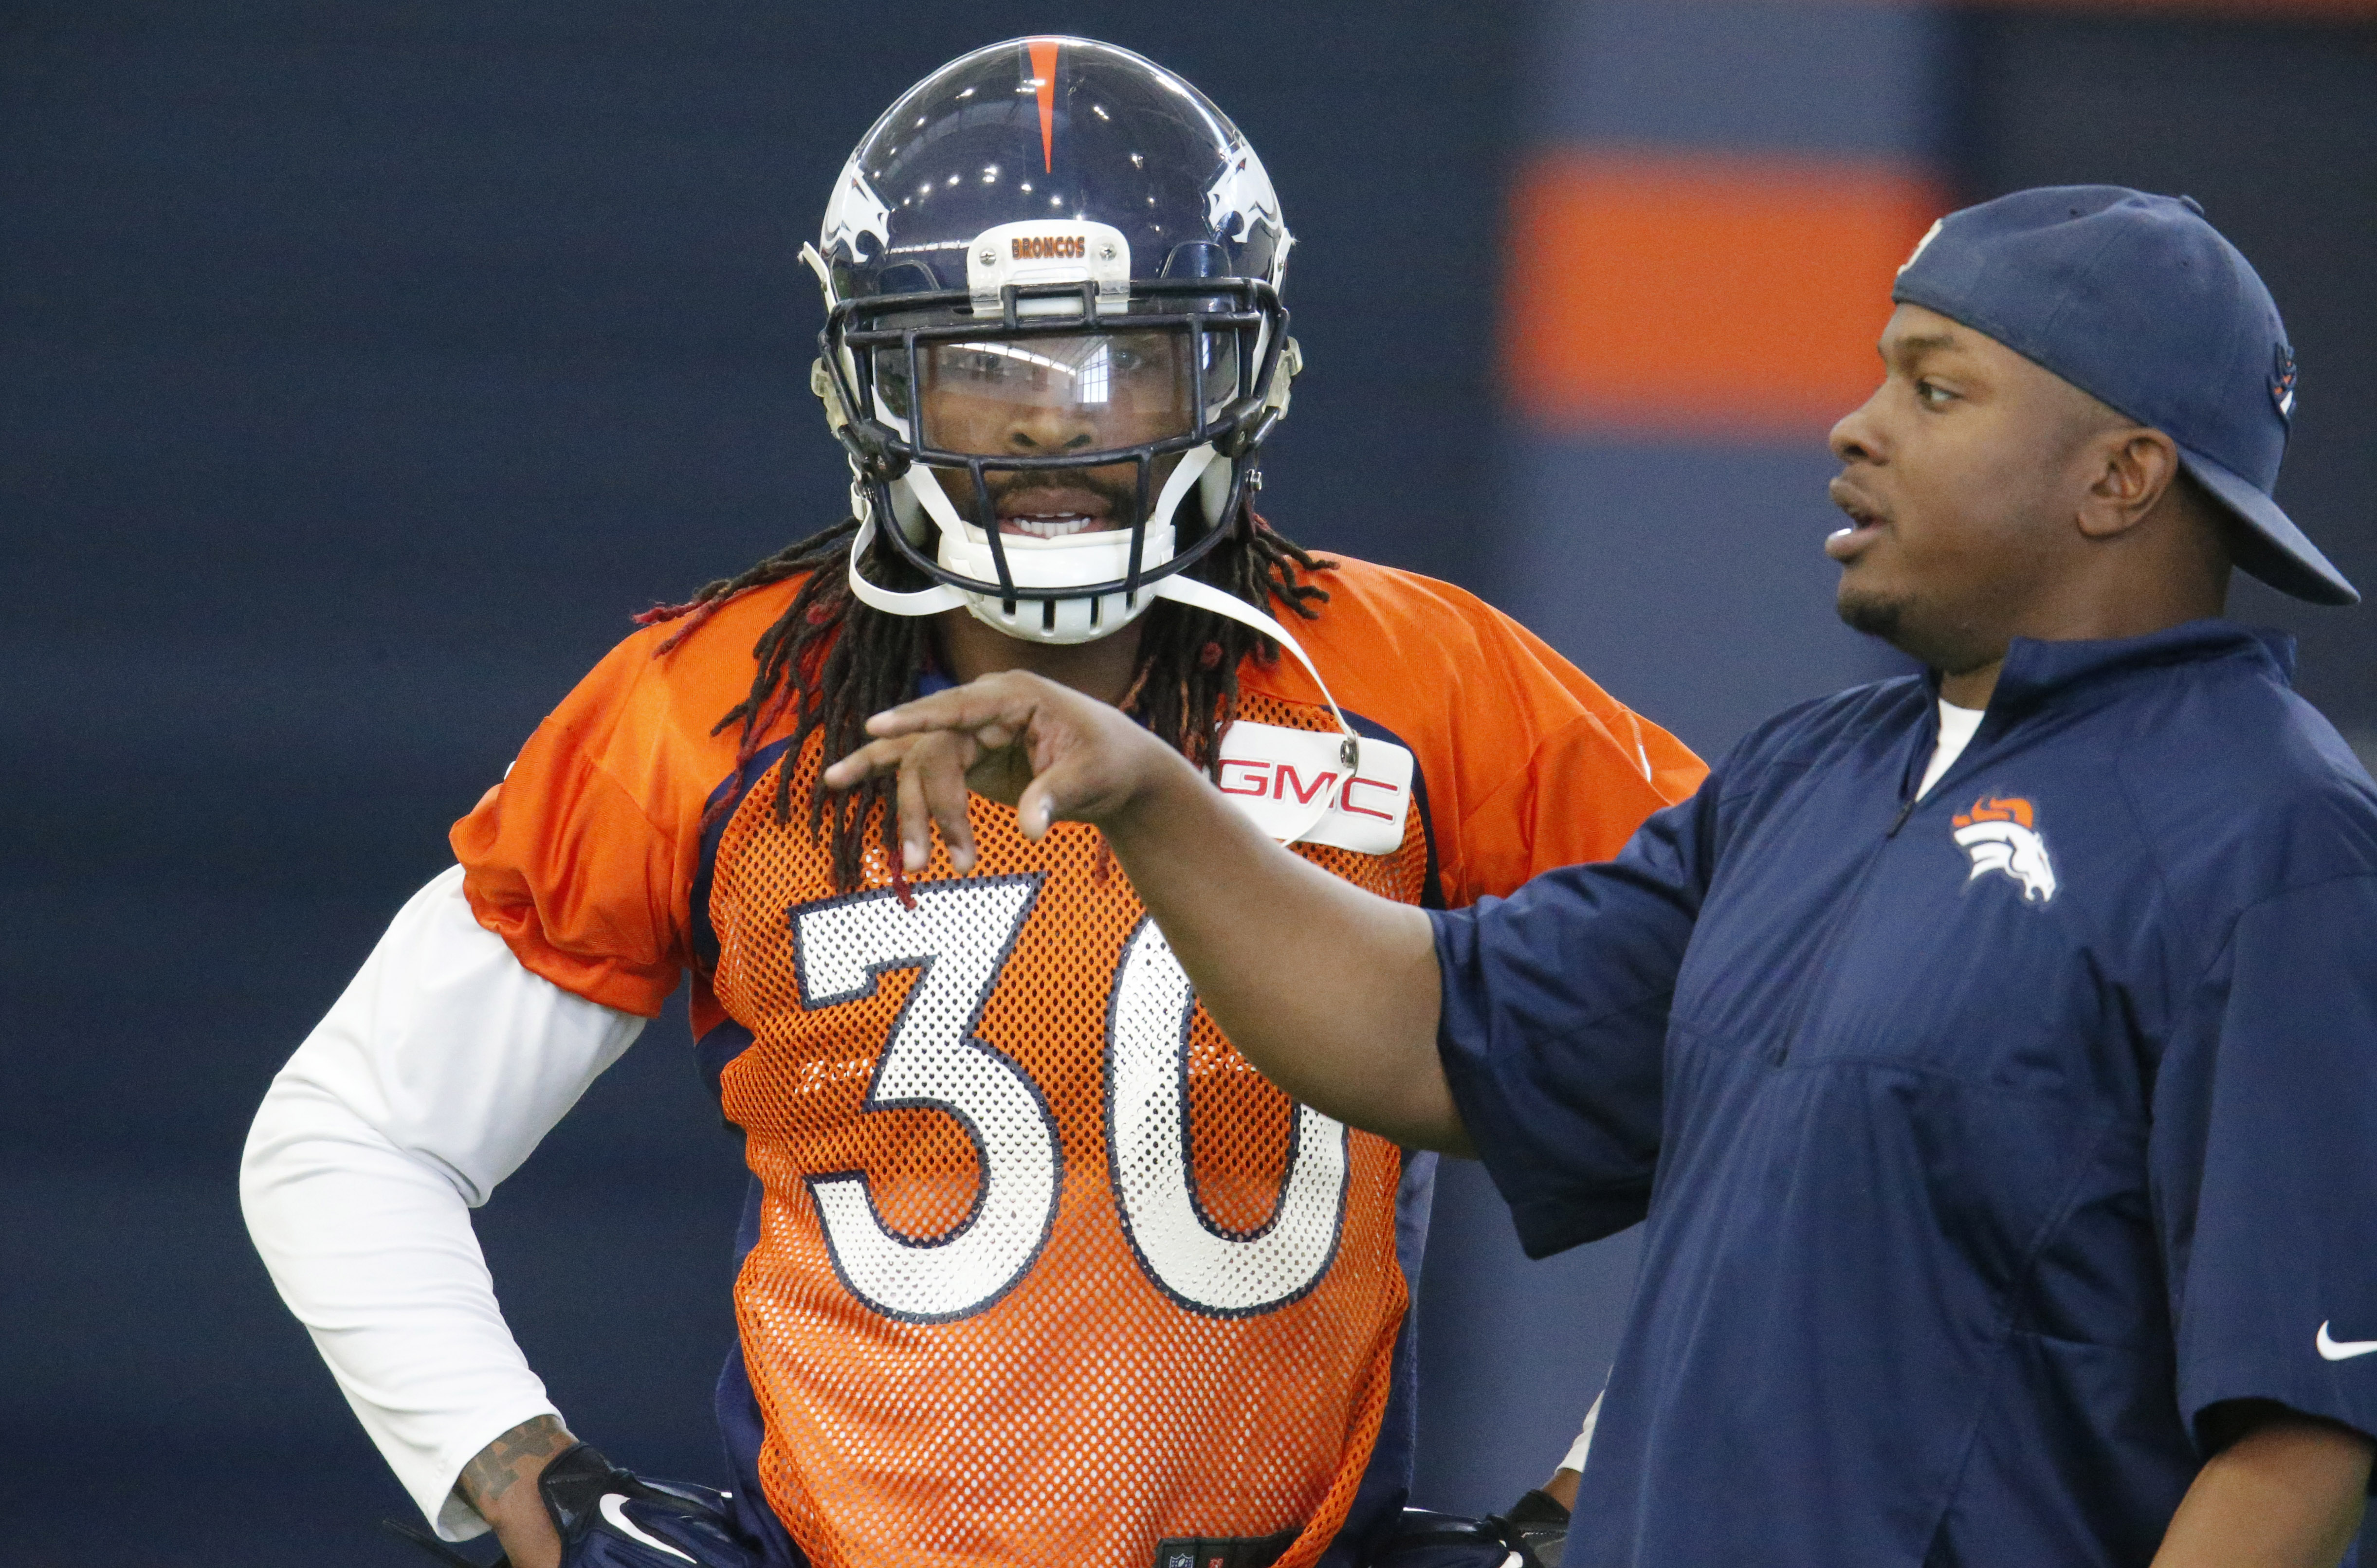 Denver Broncos strong safety David Bruton, left, confers with assistant secondary coach Samson Brown warms up during a practice at the team's headquarters Wednesday, Dec.16, 2015, in Englewood, Colo. (AP Photo/David Zalubowski)